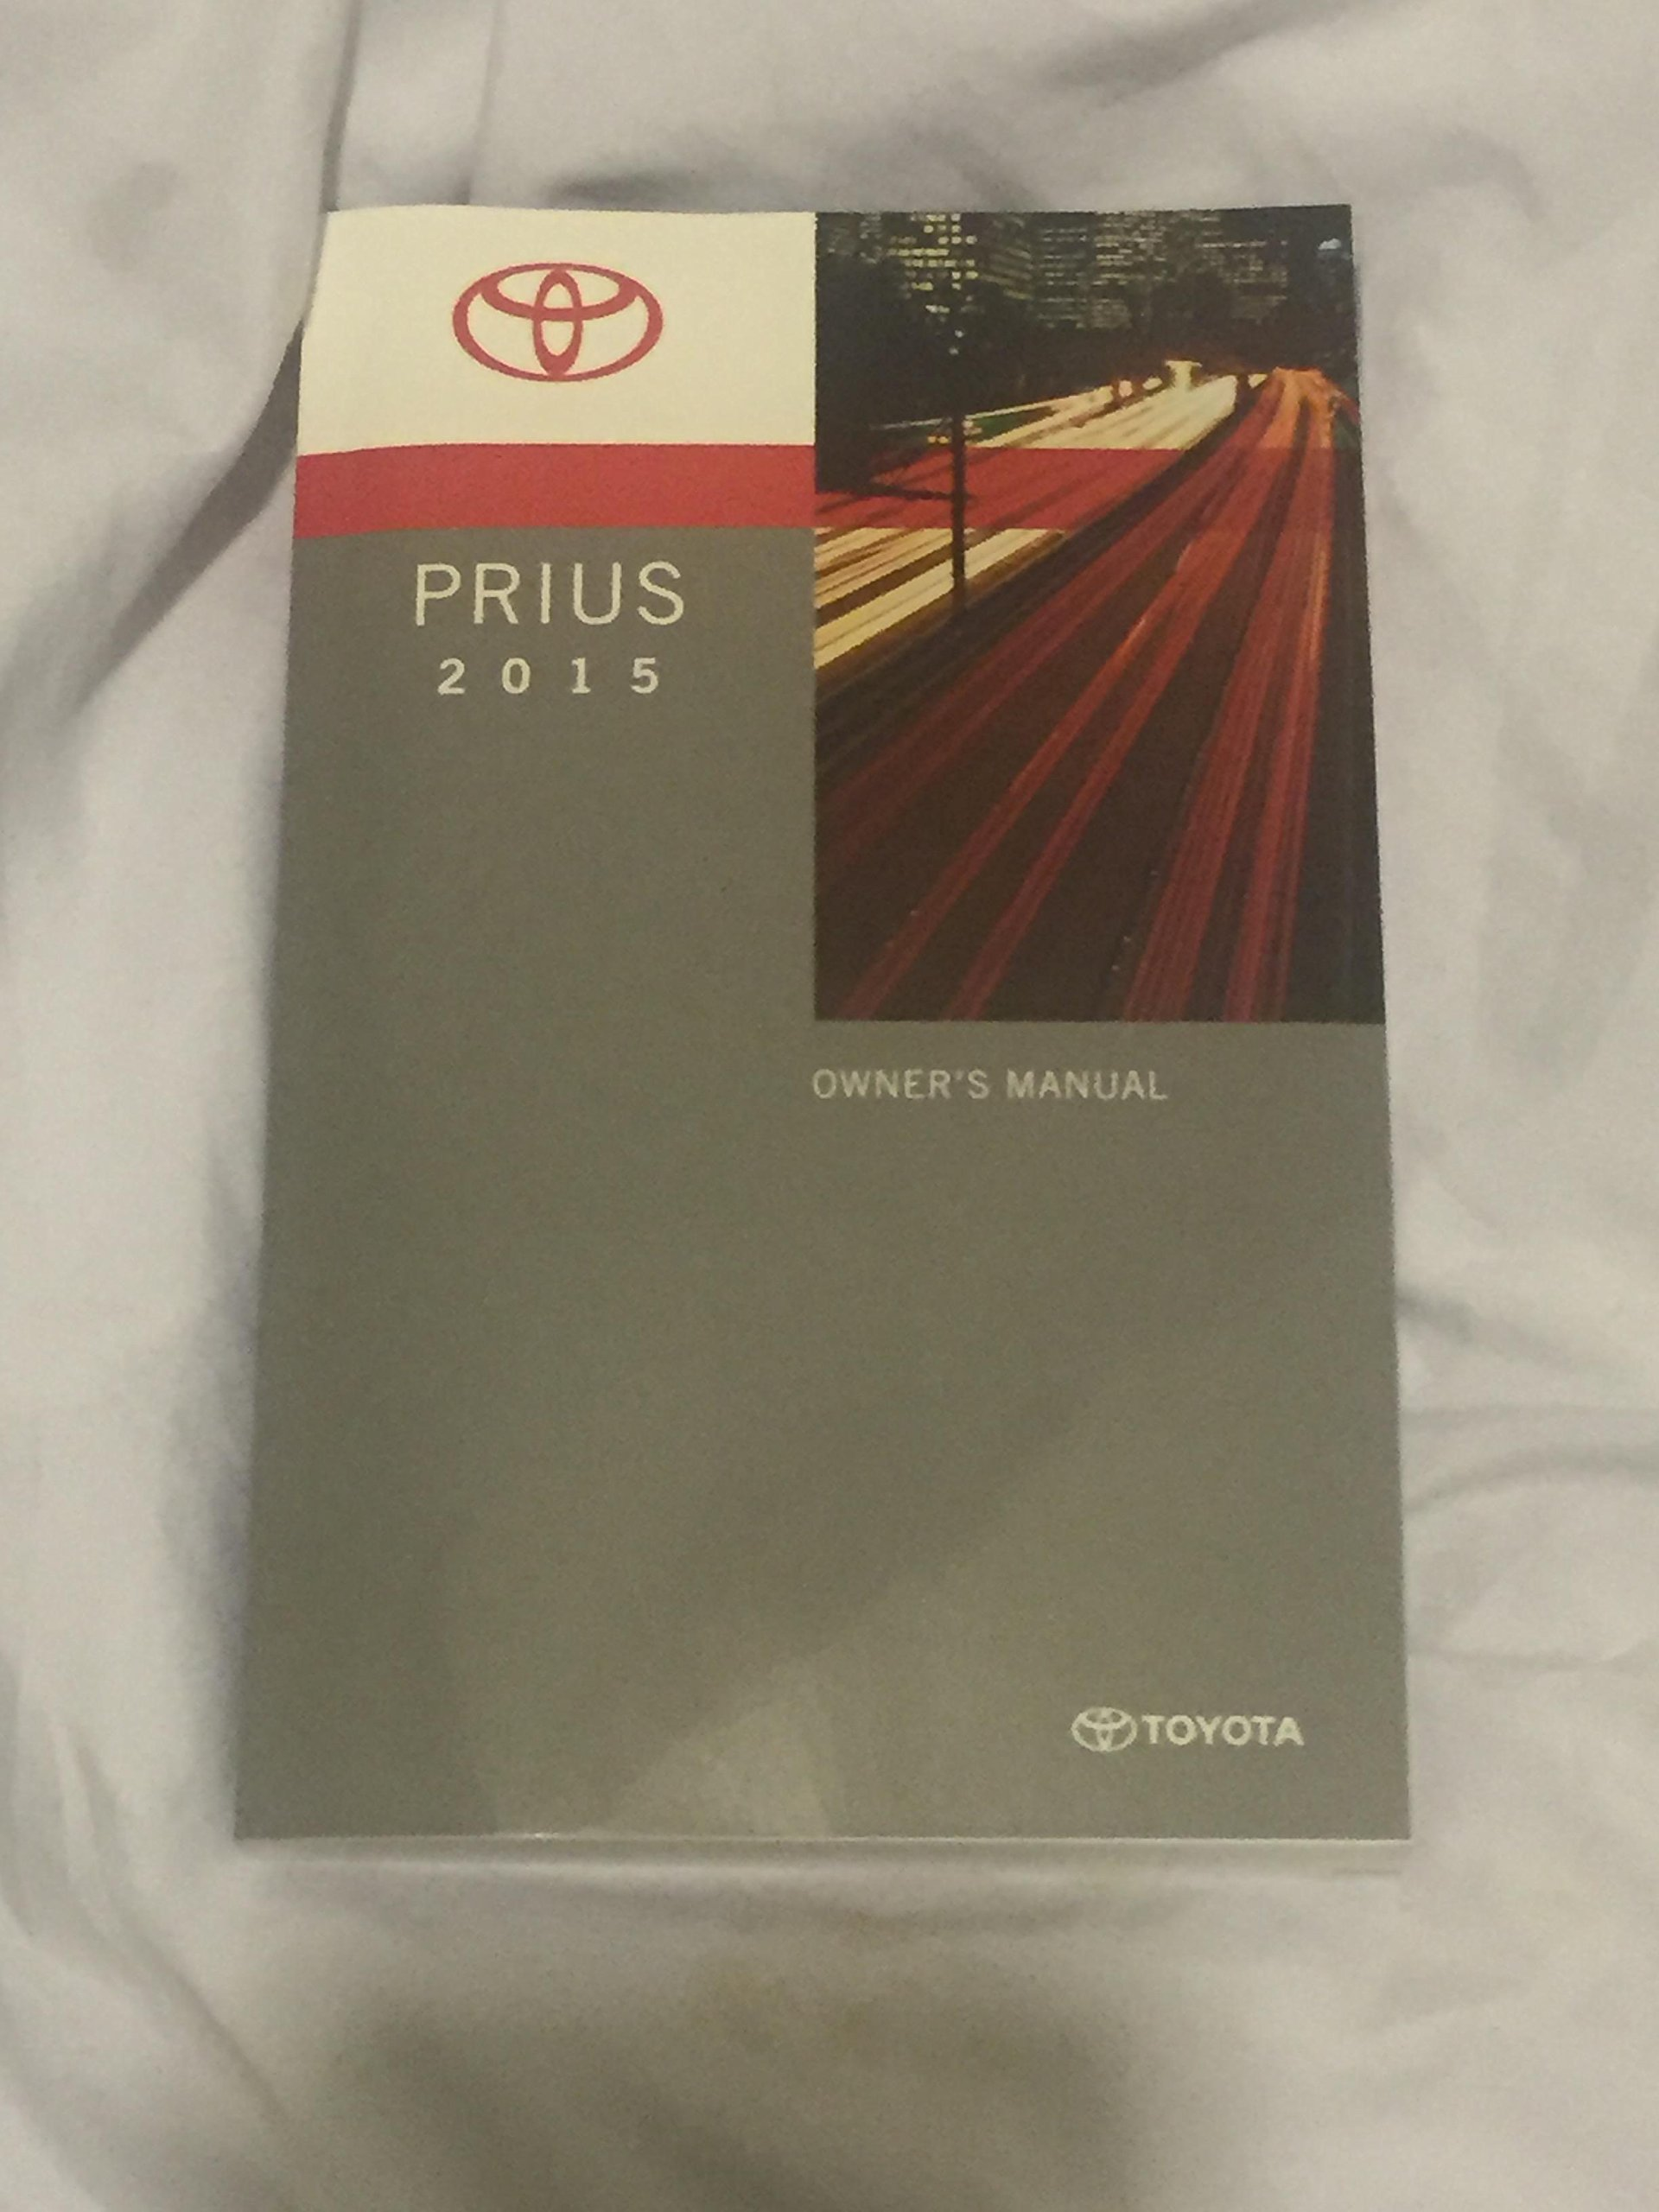 2015 Toyota Prius Hybrid Owners Manual: Toyota: Amazon.com ...